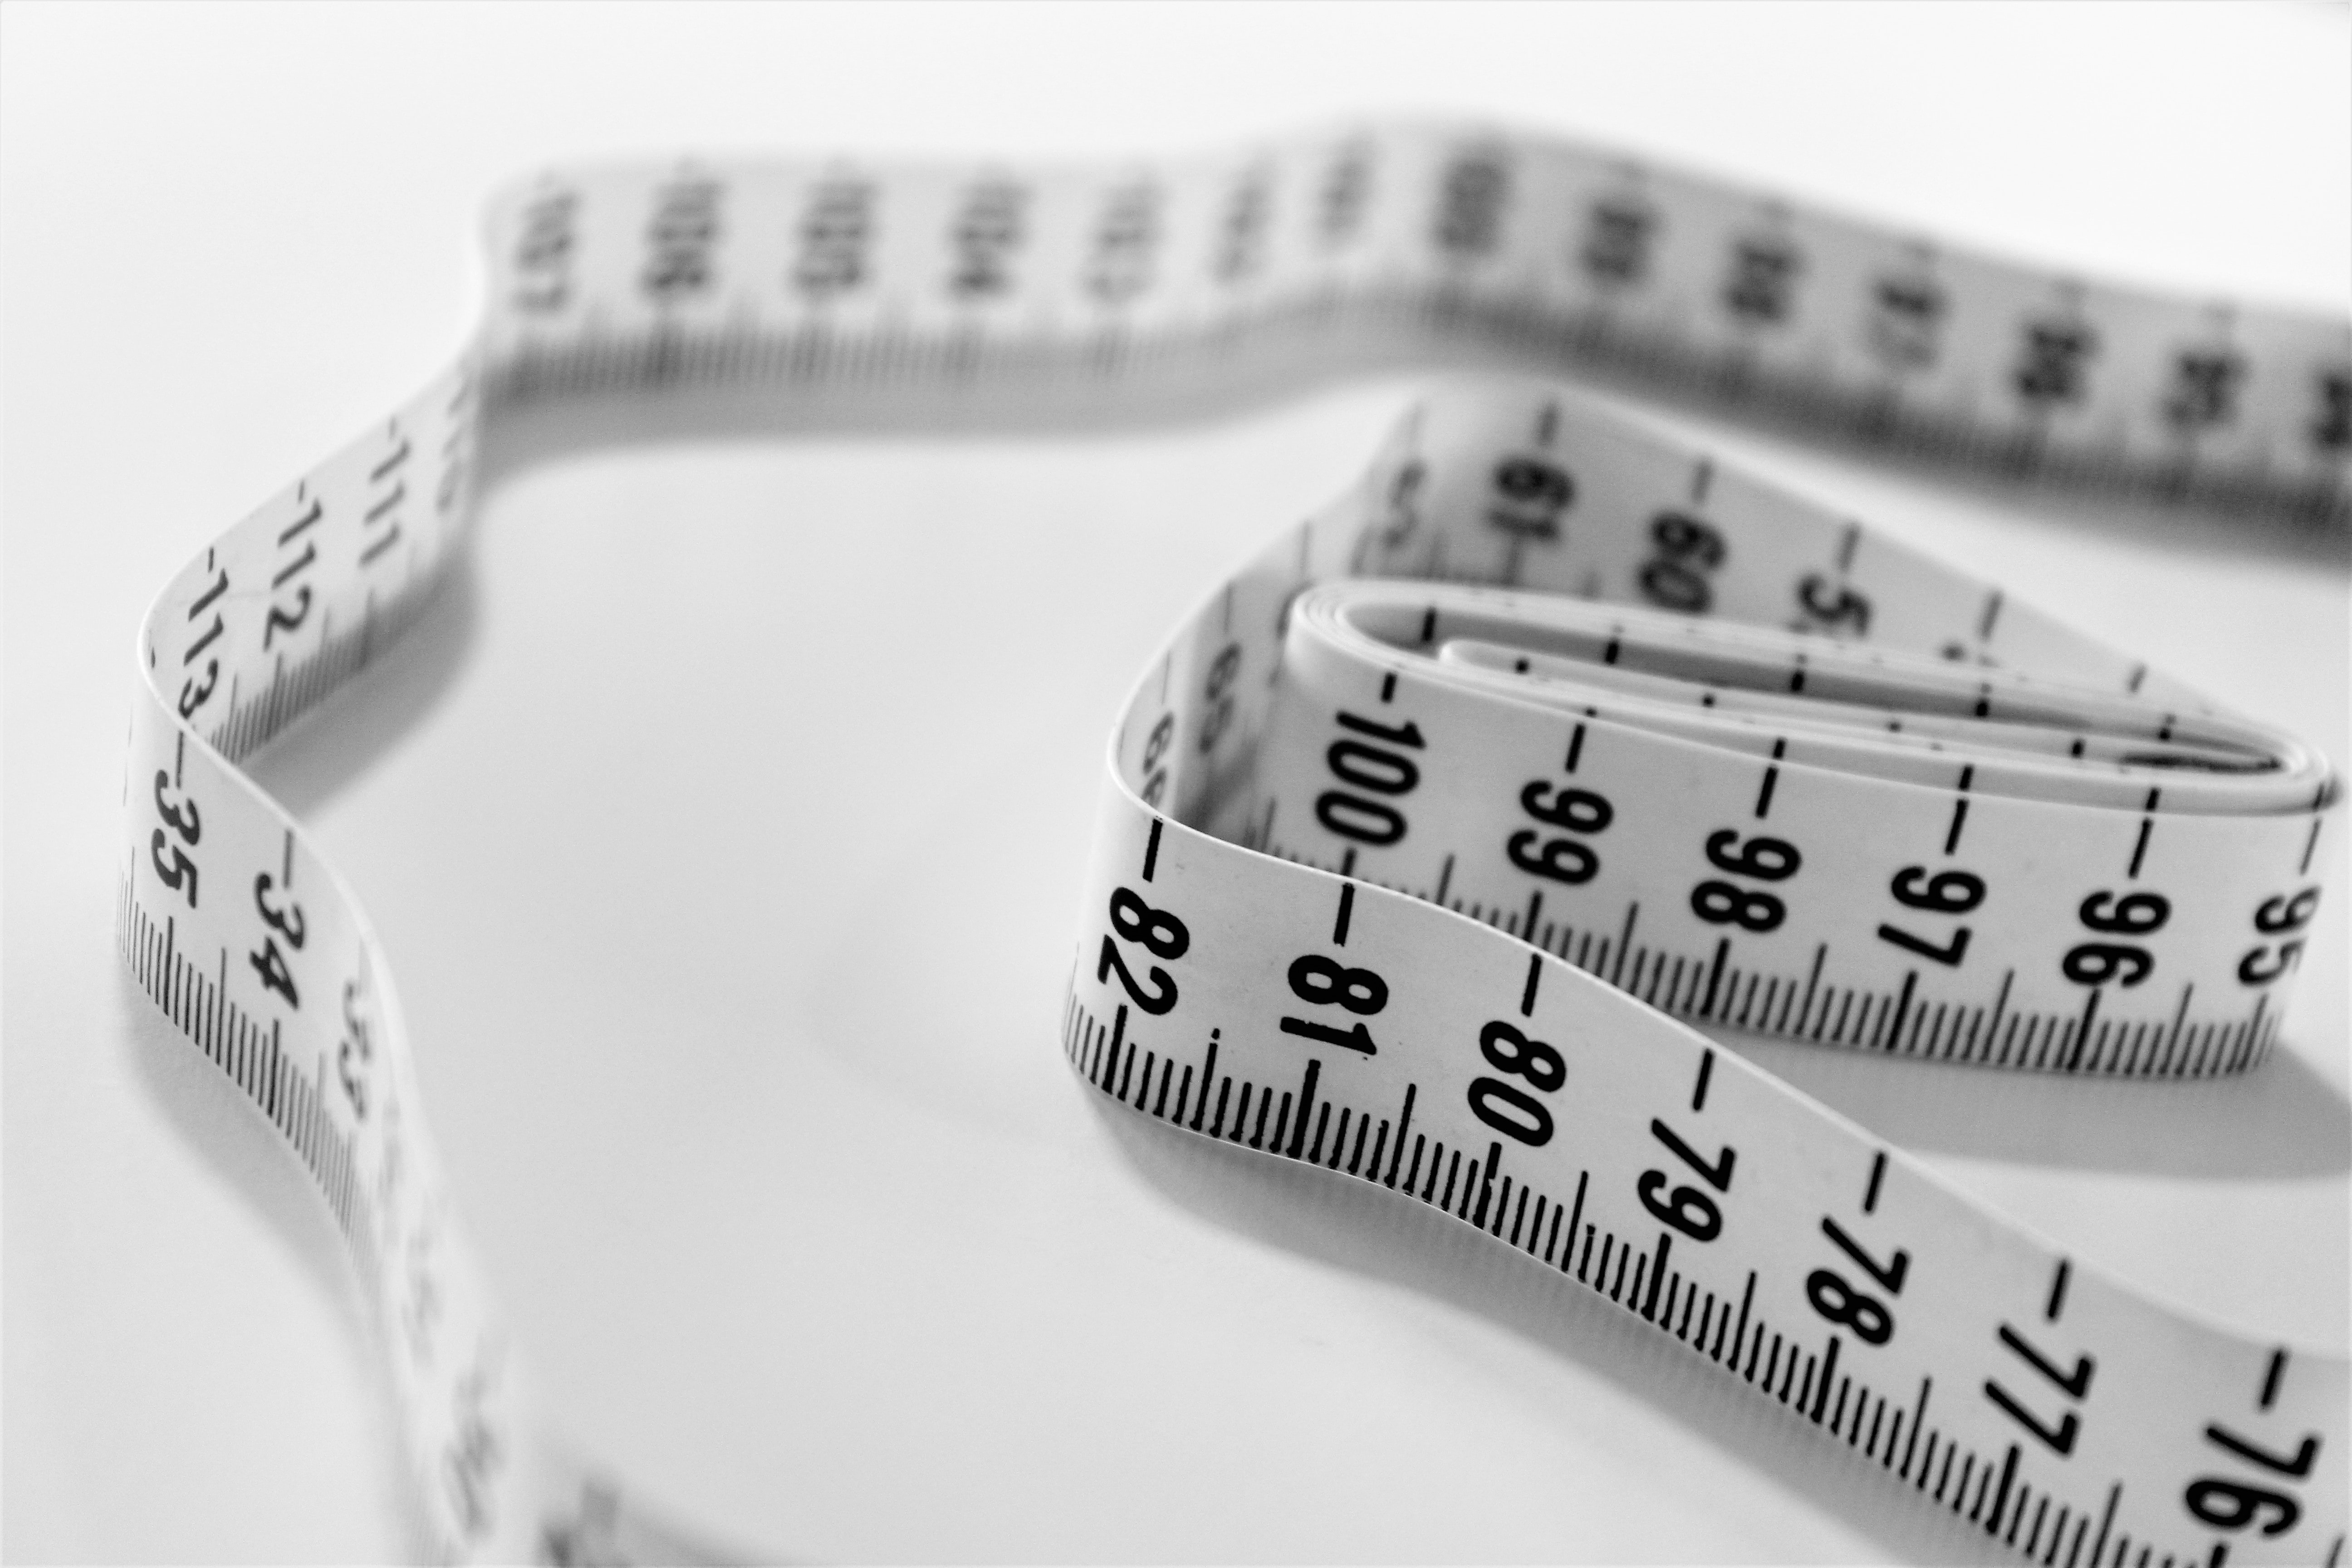 Measuring tape to measure weight loss.